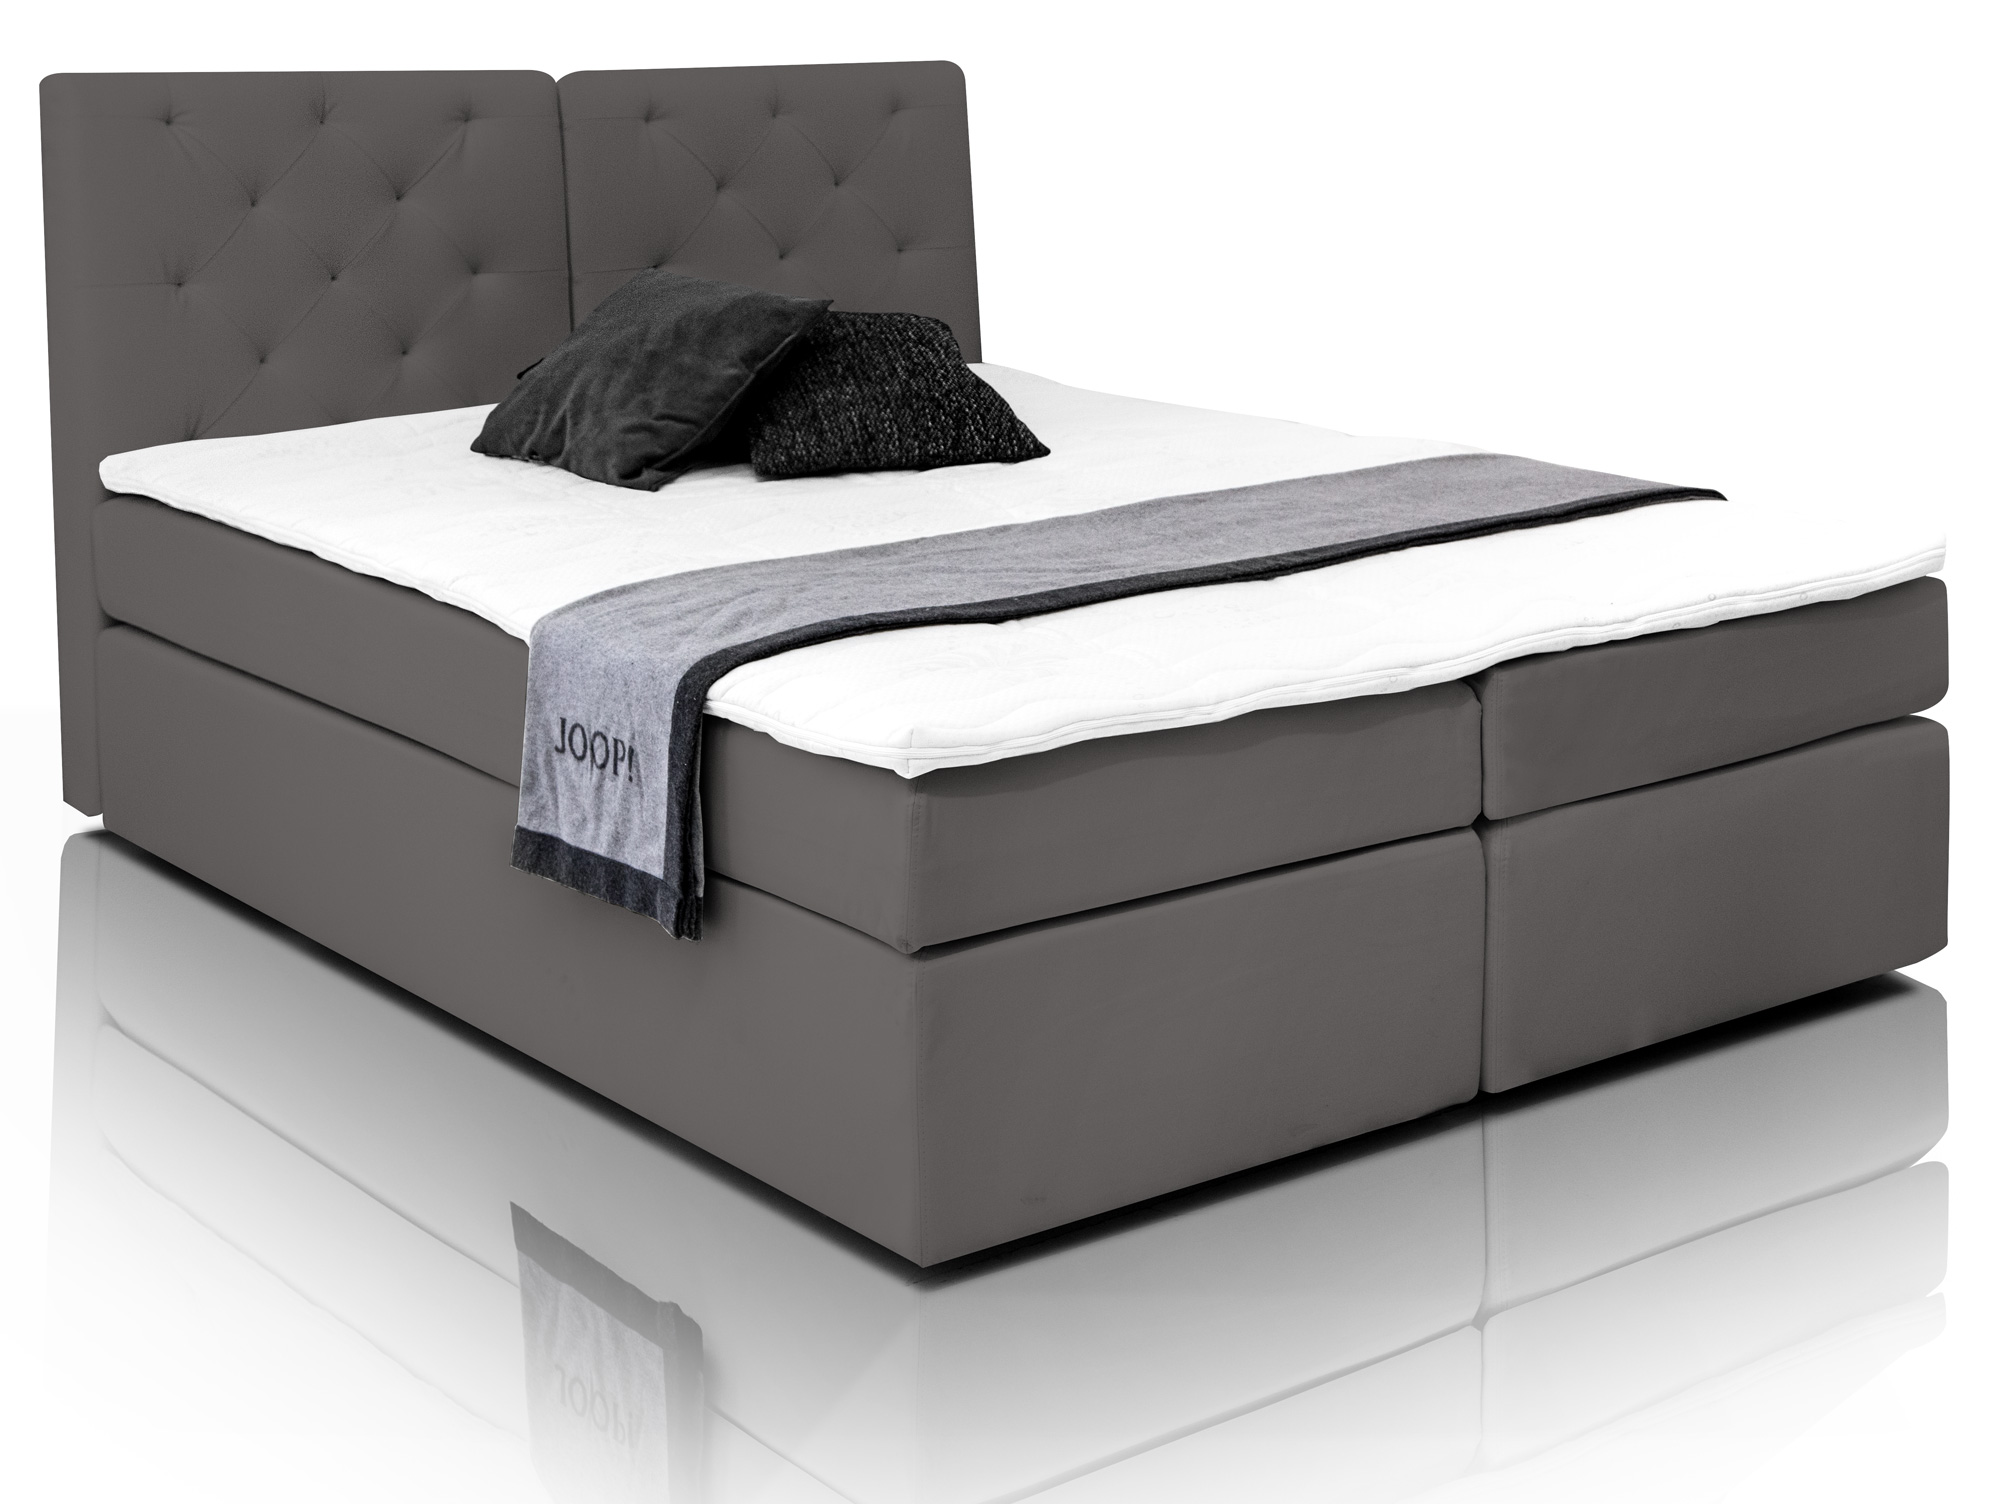 hotel bett boxspringbett anthrazit grau boxspring boxspringbetten webstoffbezug ebay. Black Bedroom Furniture Sets. Home Design Ideas